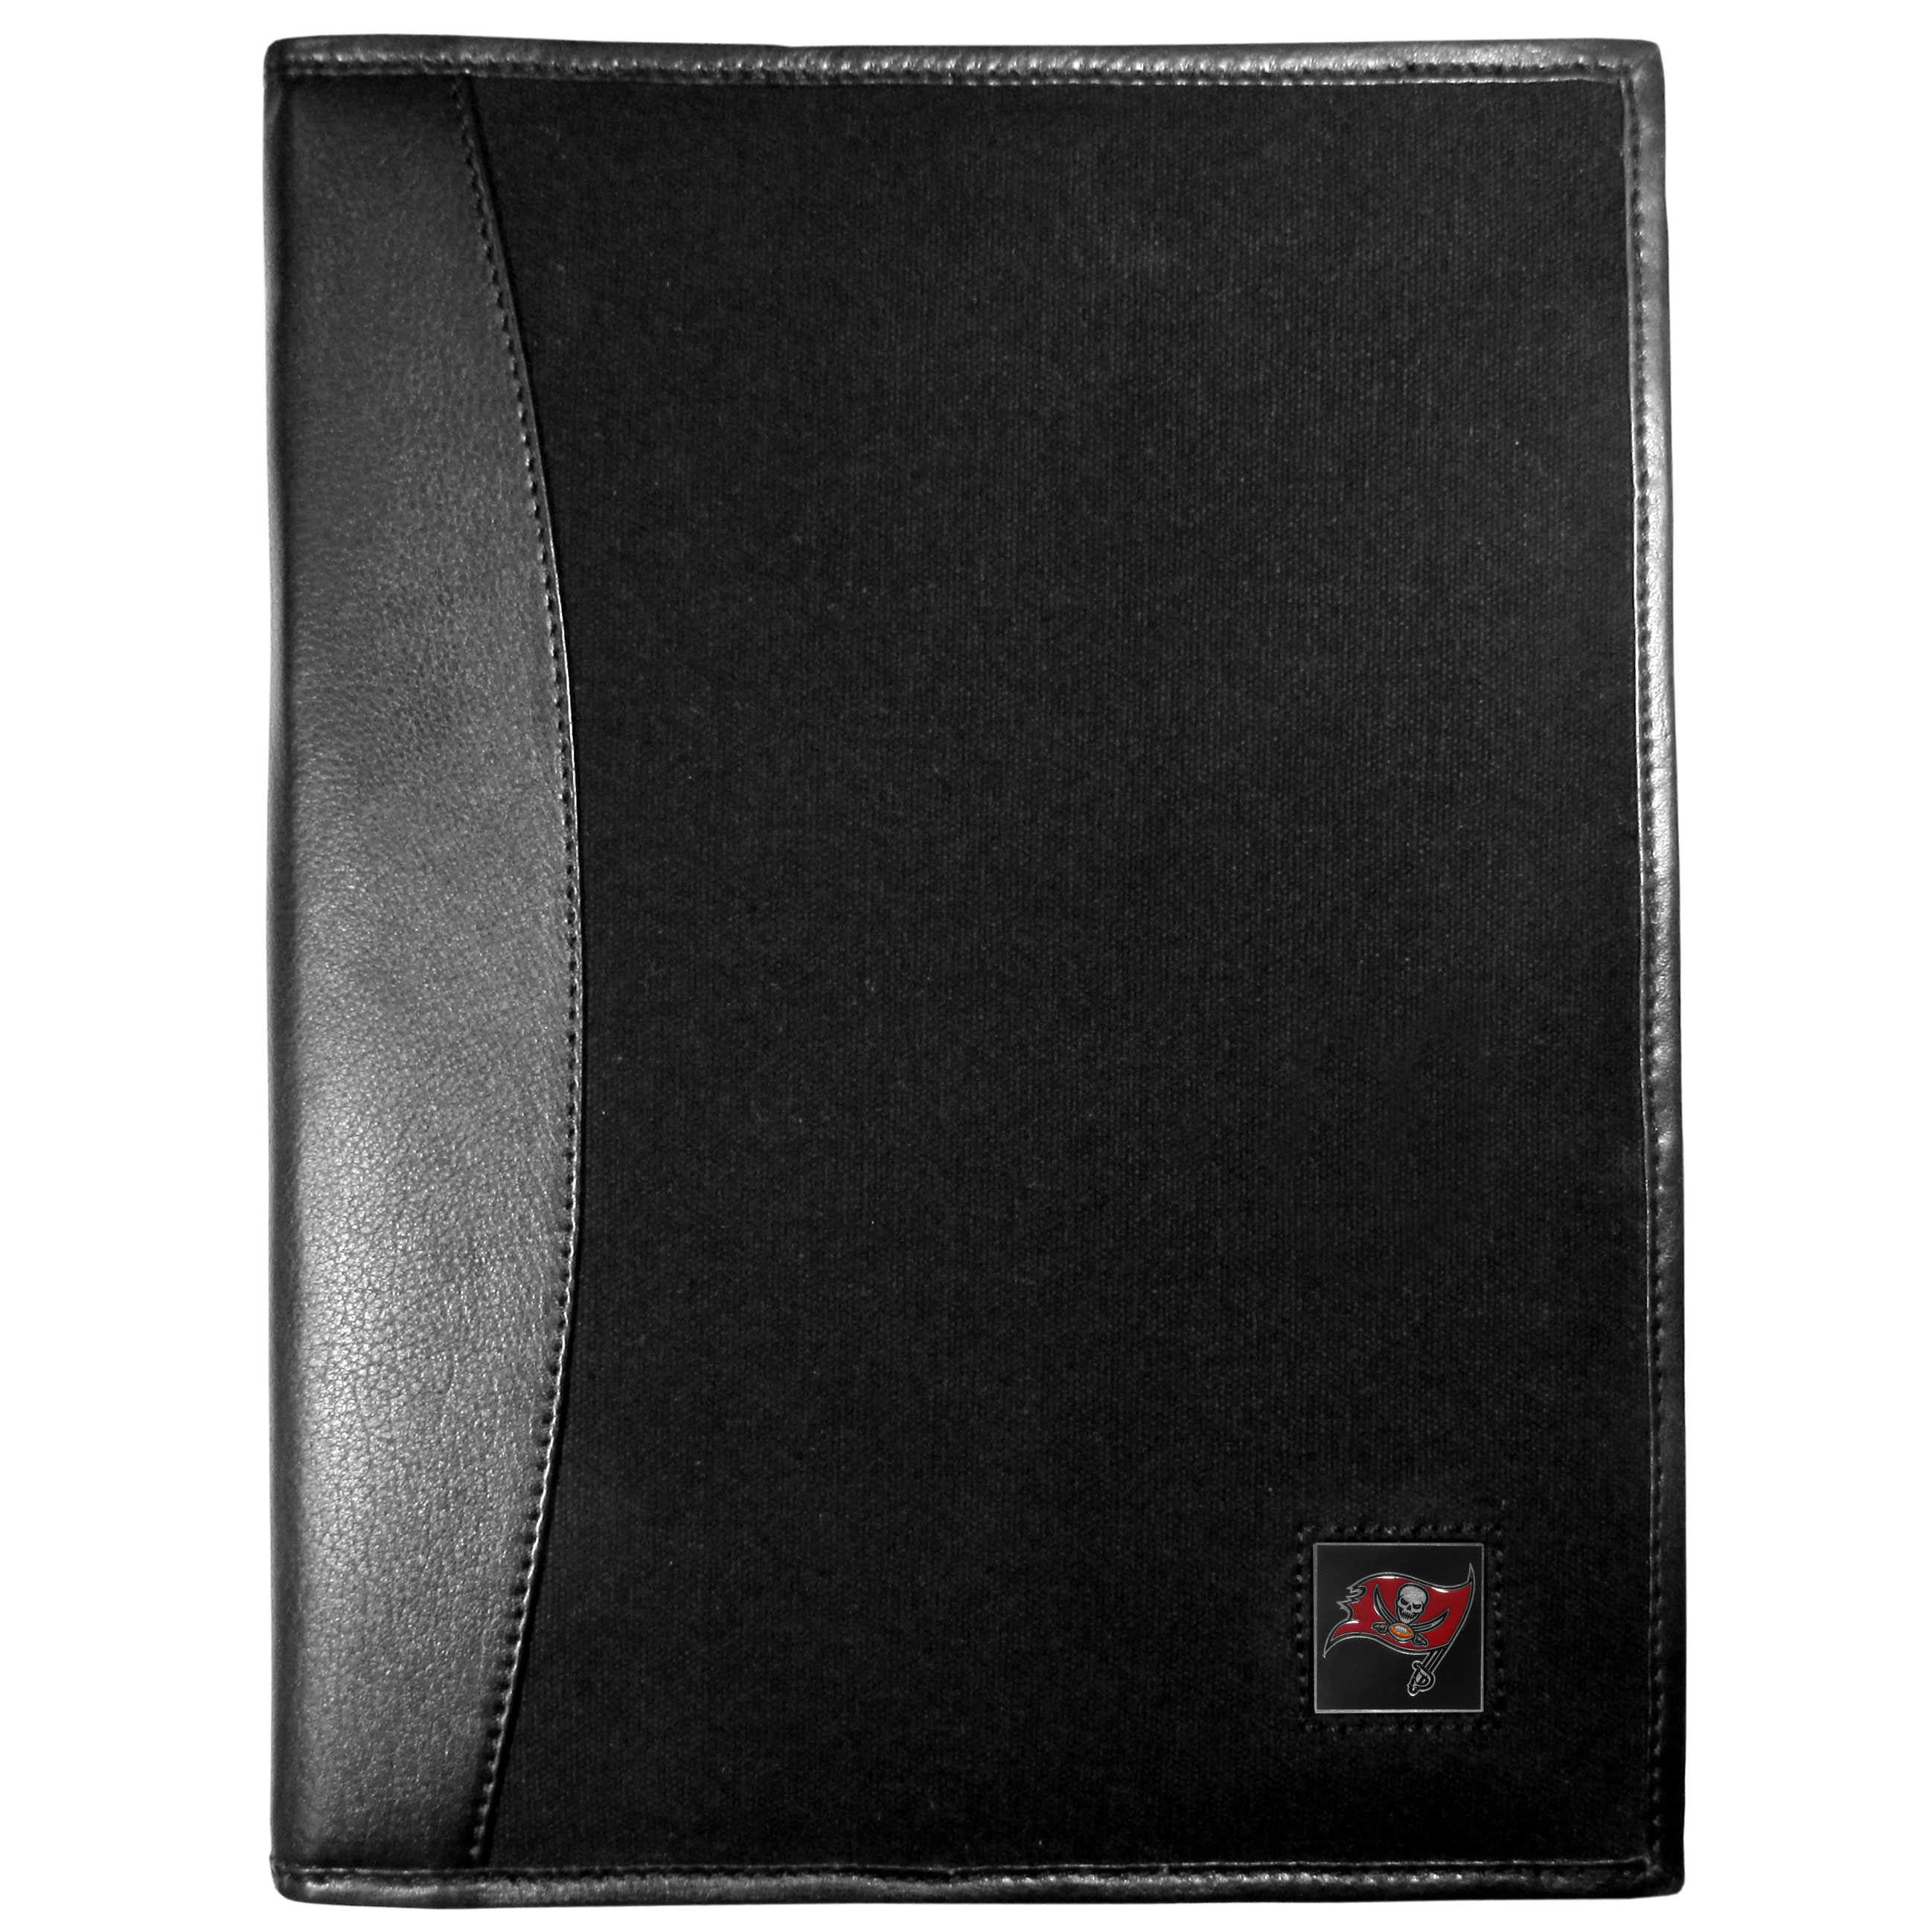 Tampa Bay Buccaneers Leather and Canvas Padfolio - Our leather and canvas padfolio perfectly blends form and function. The attractive portfolio is bound in fine grain leather with an attractive canvas finish and the interior is a soft nylon. This high quality business accessory also features a fully cast metal Tampa Bay Buccaneers emblem that is subtly set in the corner of the organizer. It is packed with features like 6 card slots for badges, business cards, hotel keys or credit cards and ID with a large pocket for loose papers and a writing tablet slot making it a must-have for the professional on the go.